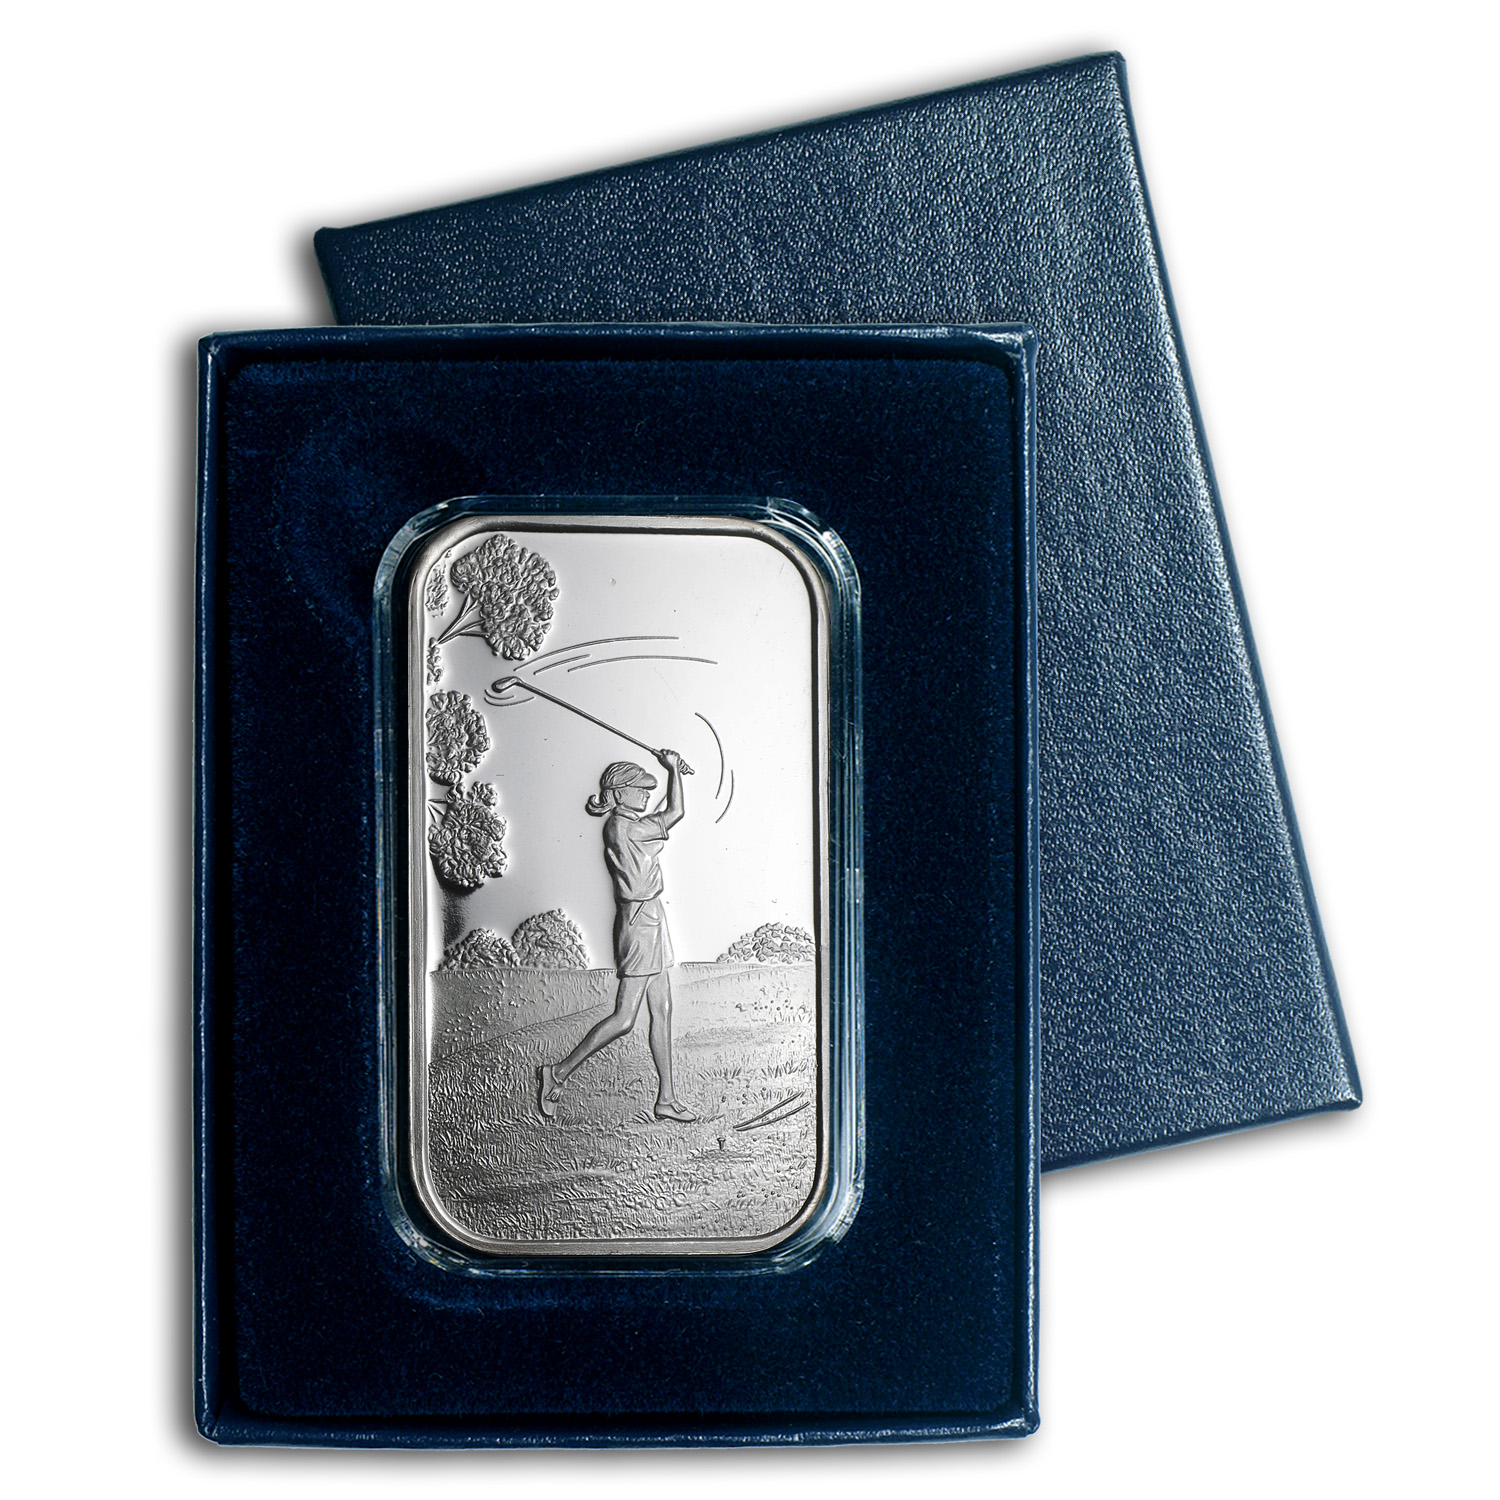 1 oz Silver Bar - Female Golfer (w/Gift Box & Capsule)